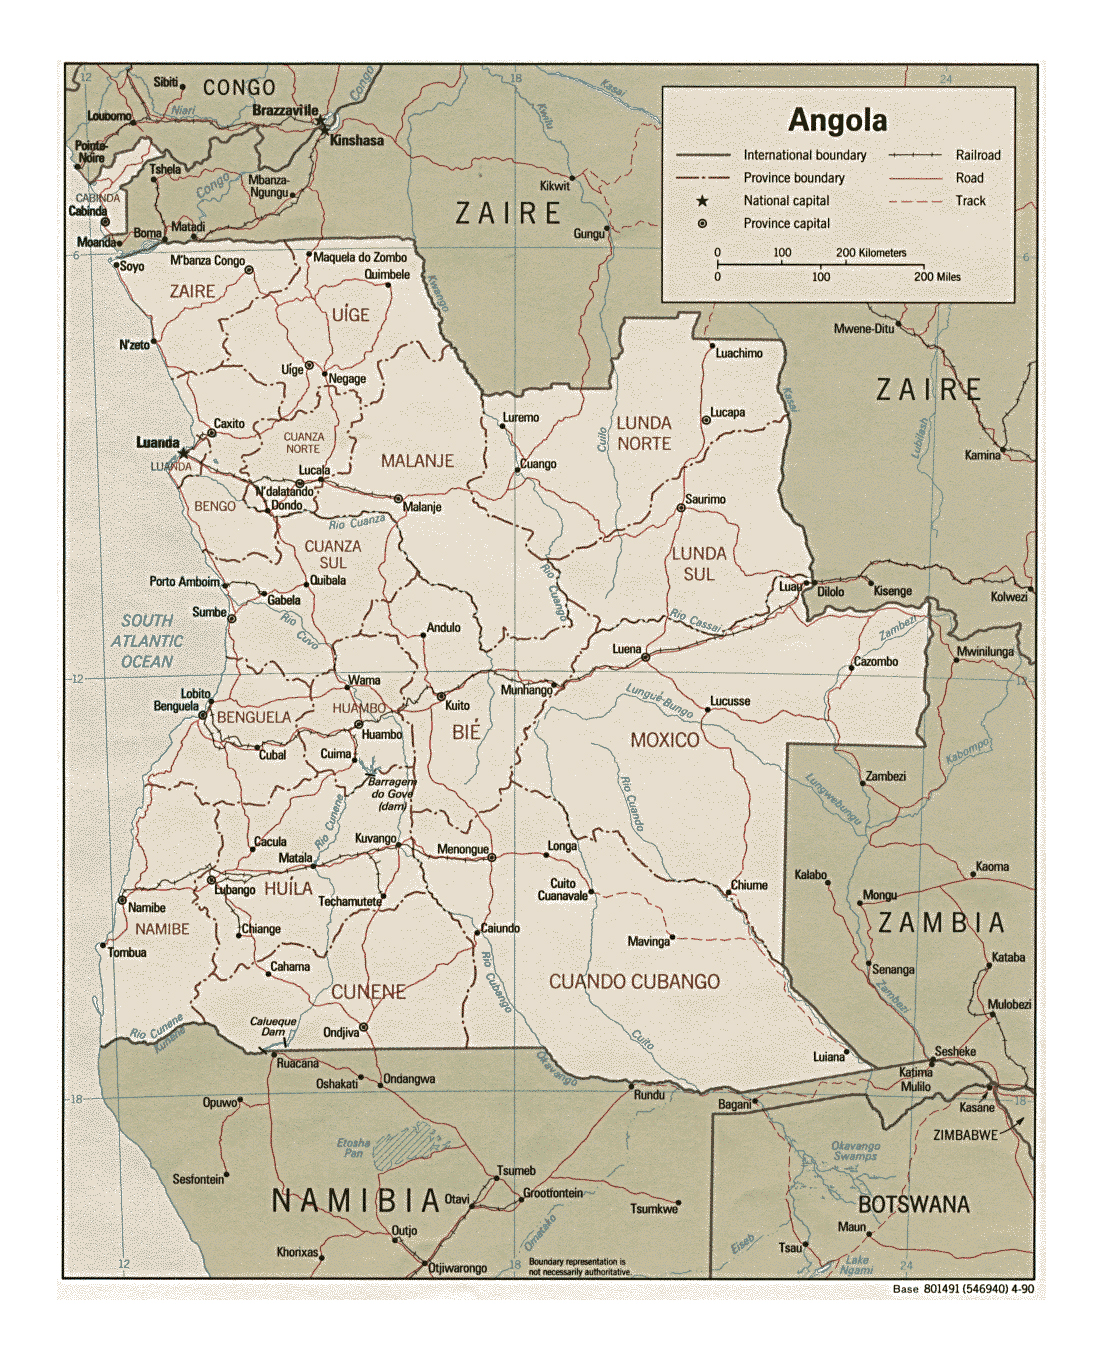 Detailed political and administrative map of Angola with roads